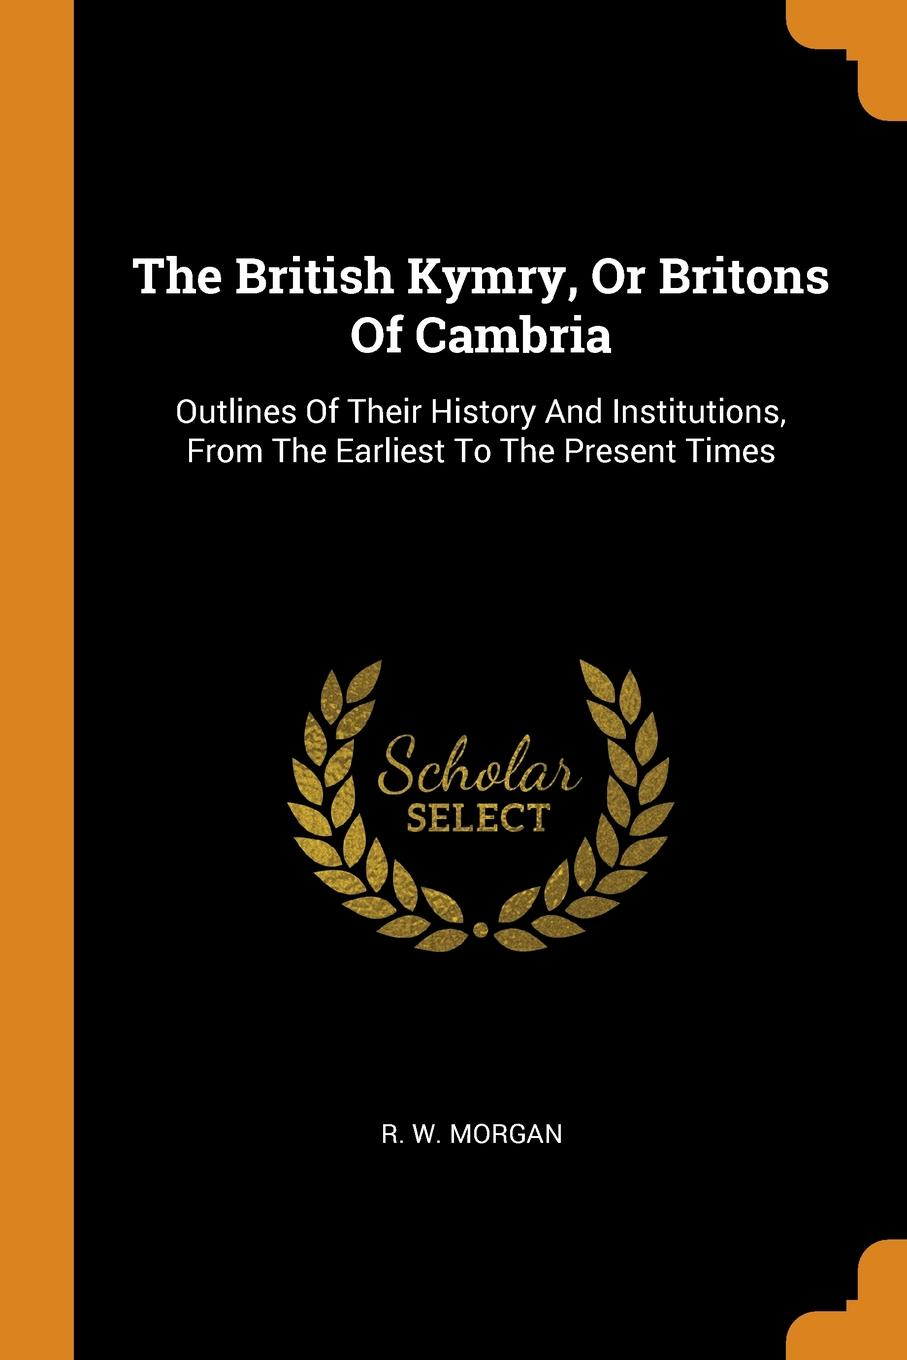 R. W. Morgan The British Kymry, Or Britons Of Cambria. Outlines Of Their History And Institutions, From The Earliest To The Present Times coheed and cambria saskatoon